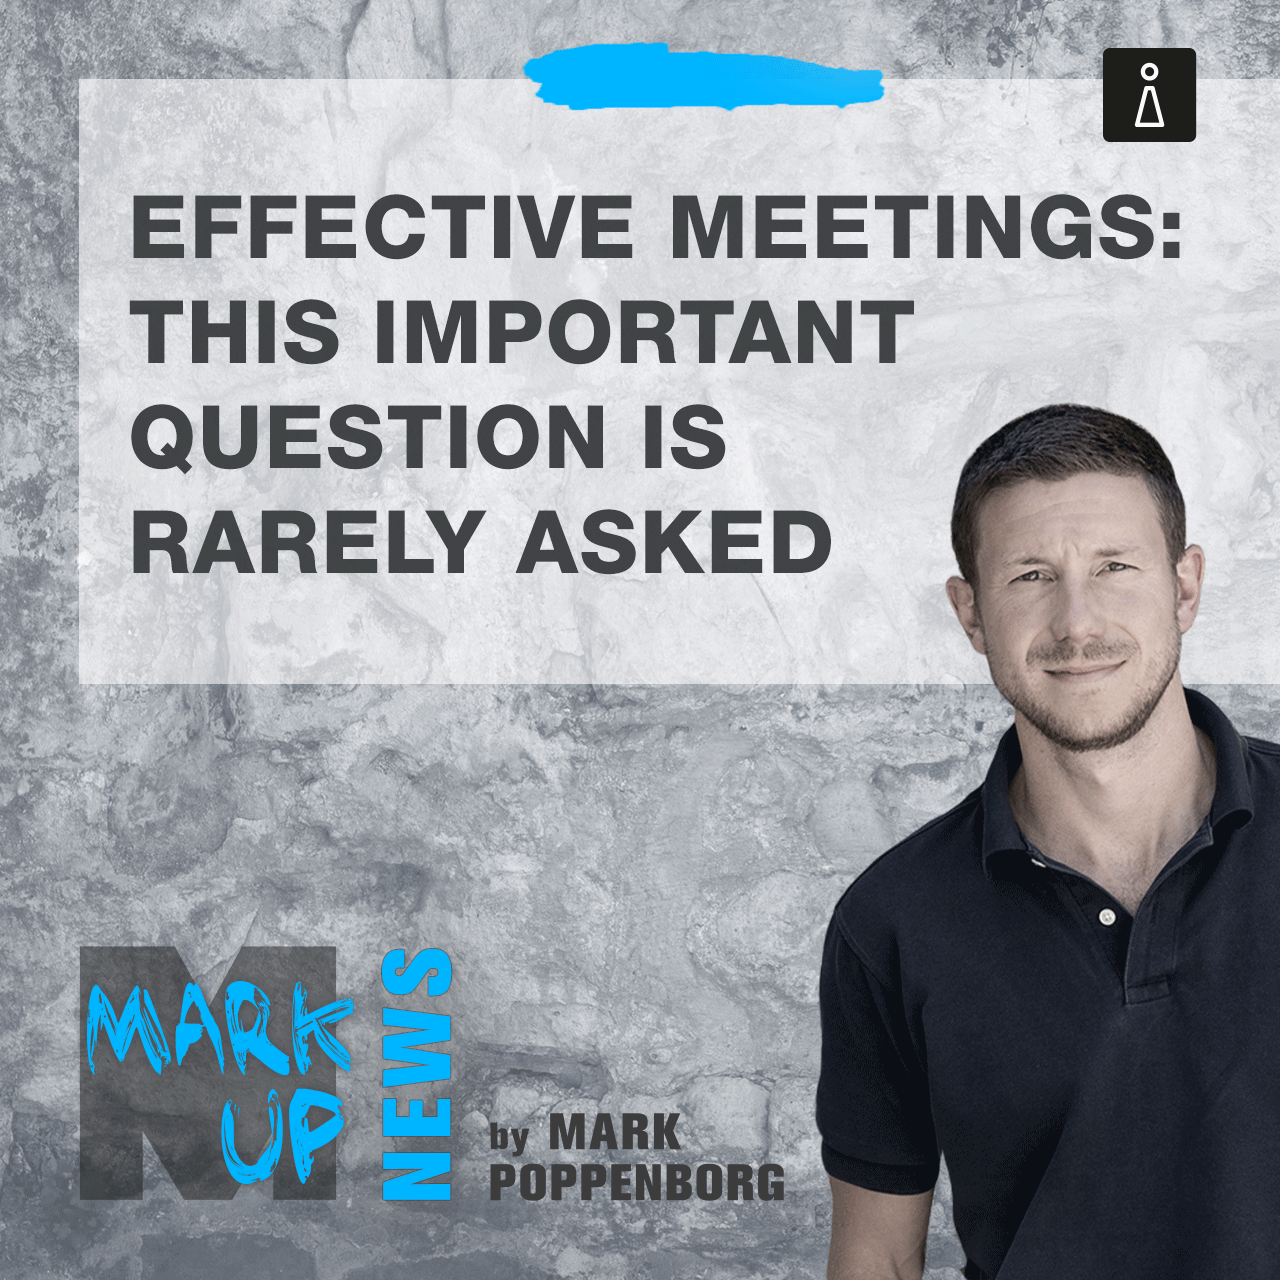 Effective Meetings: this important question is rarely asked